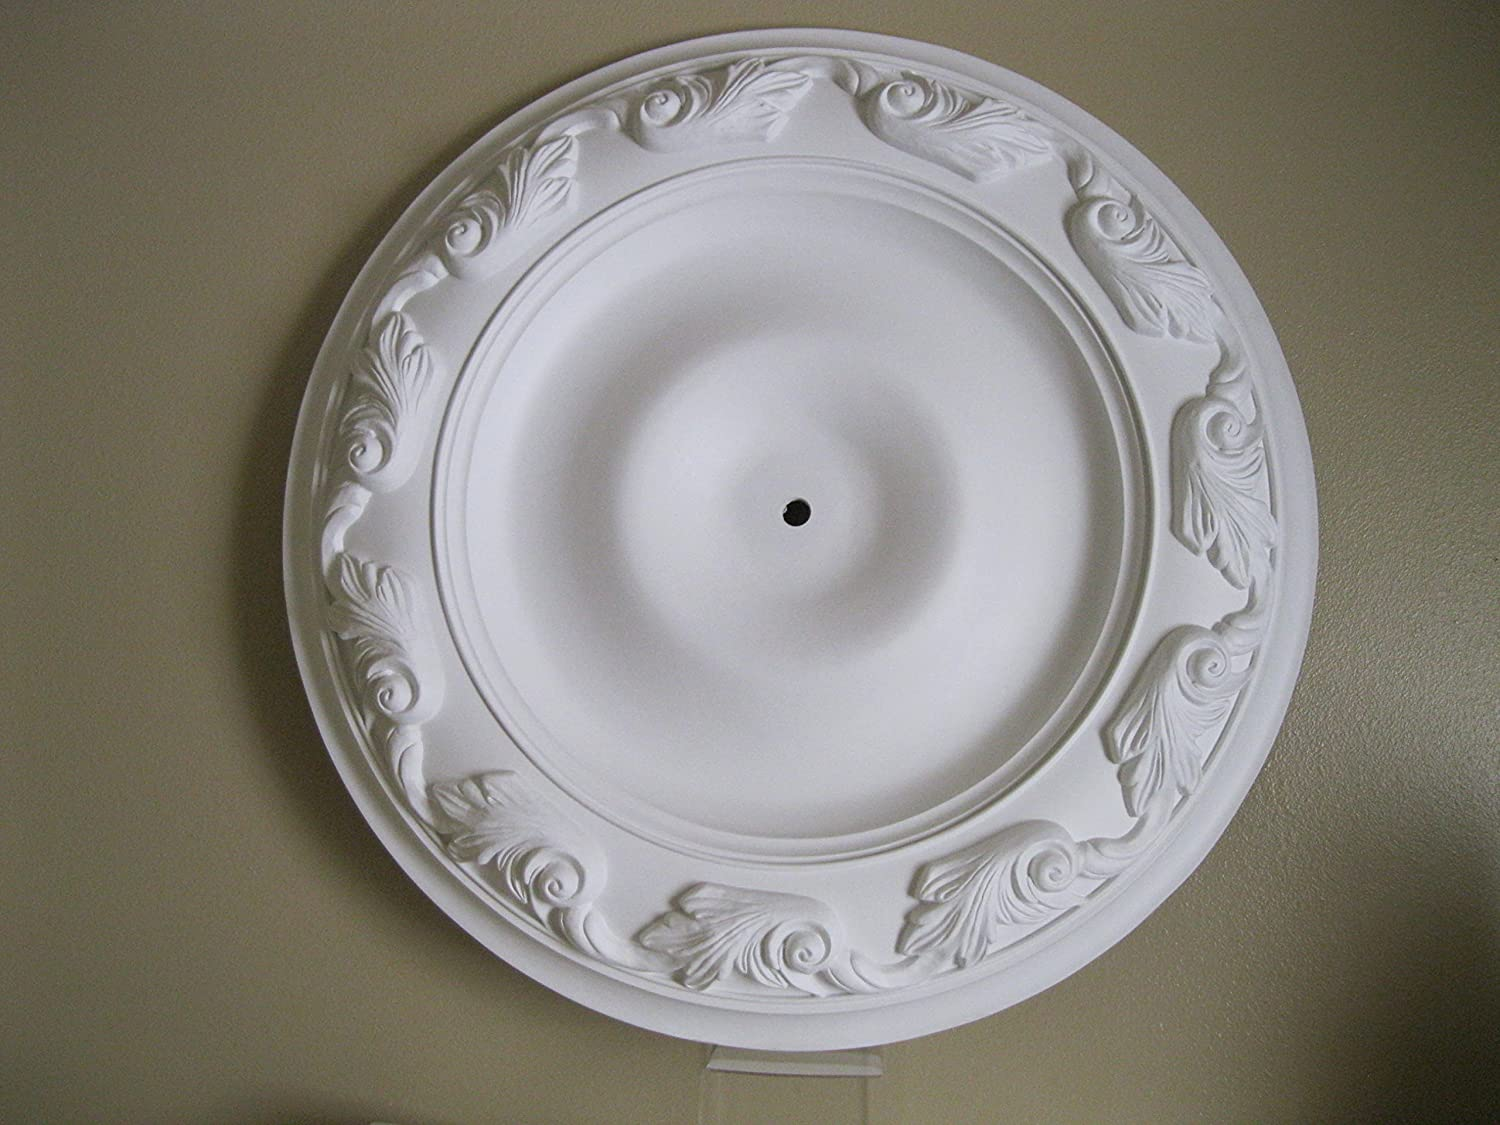 36 Inch Decorative Ceiling Medallion-  Lighting  Ceiling Fans White- Paintable